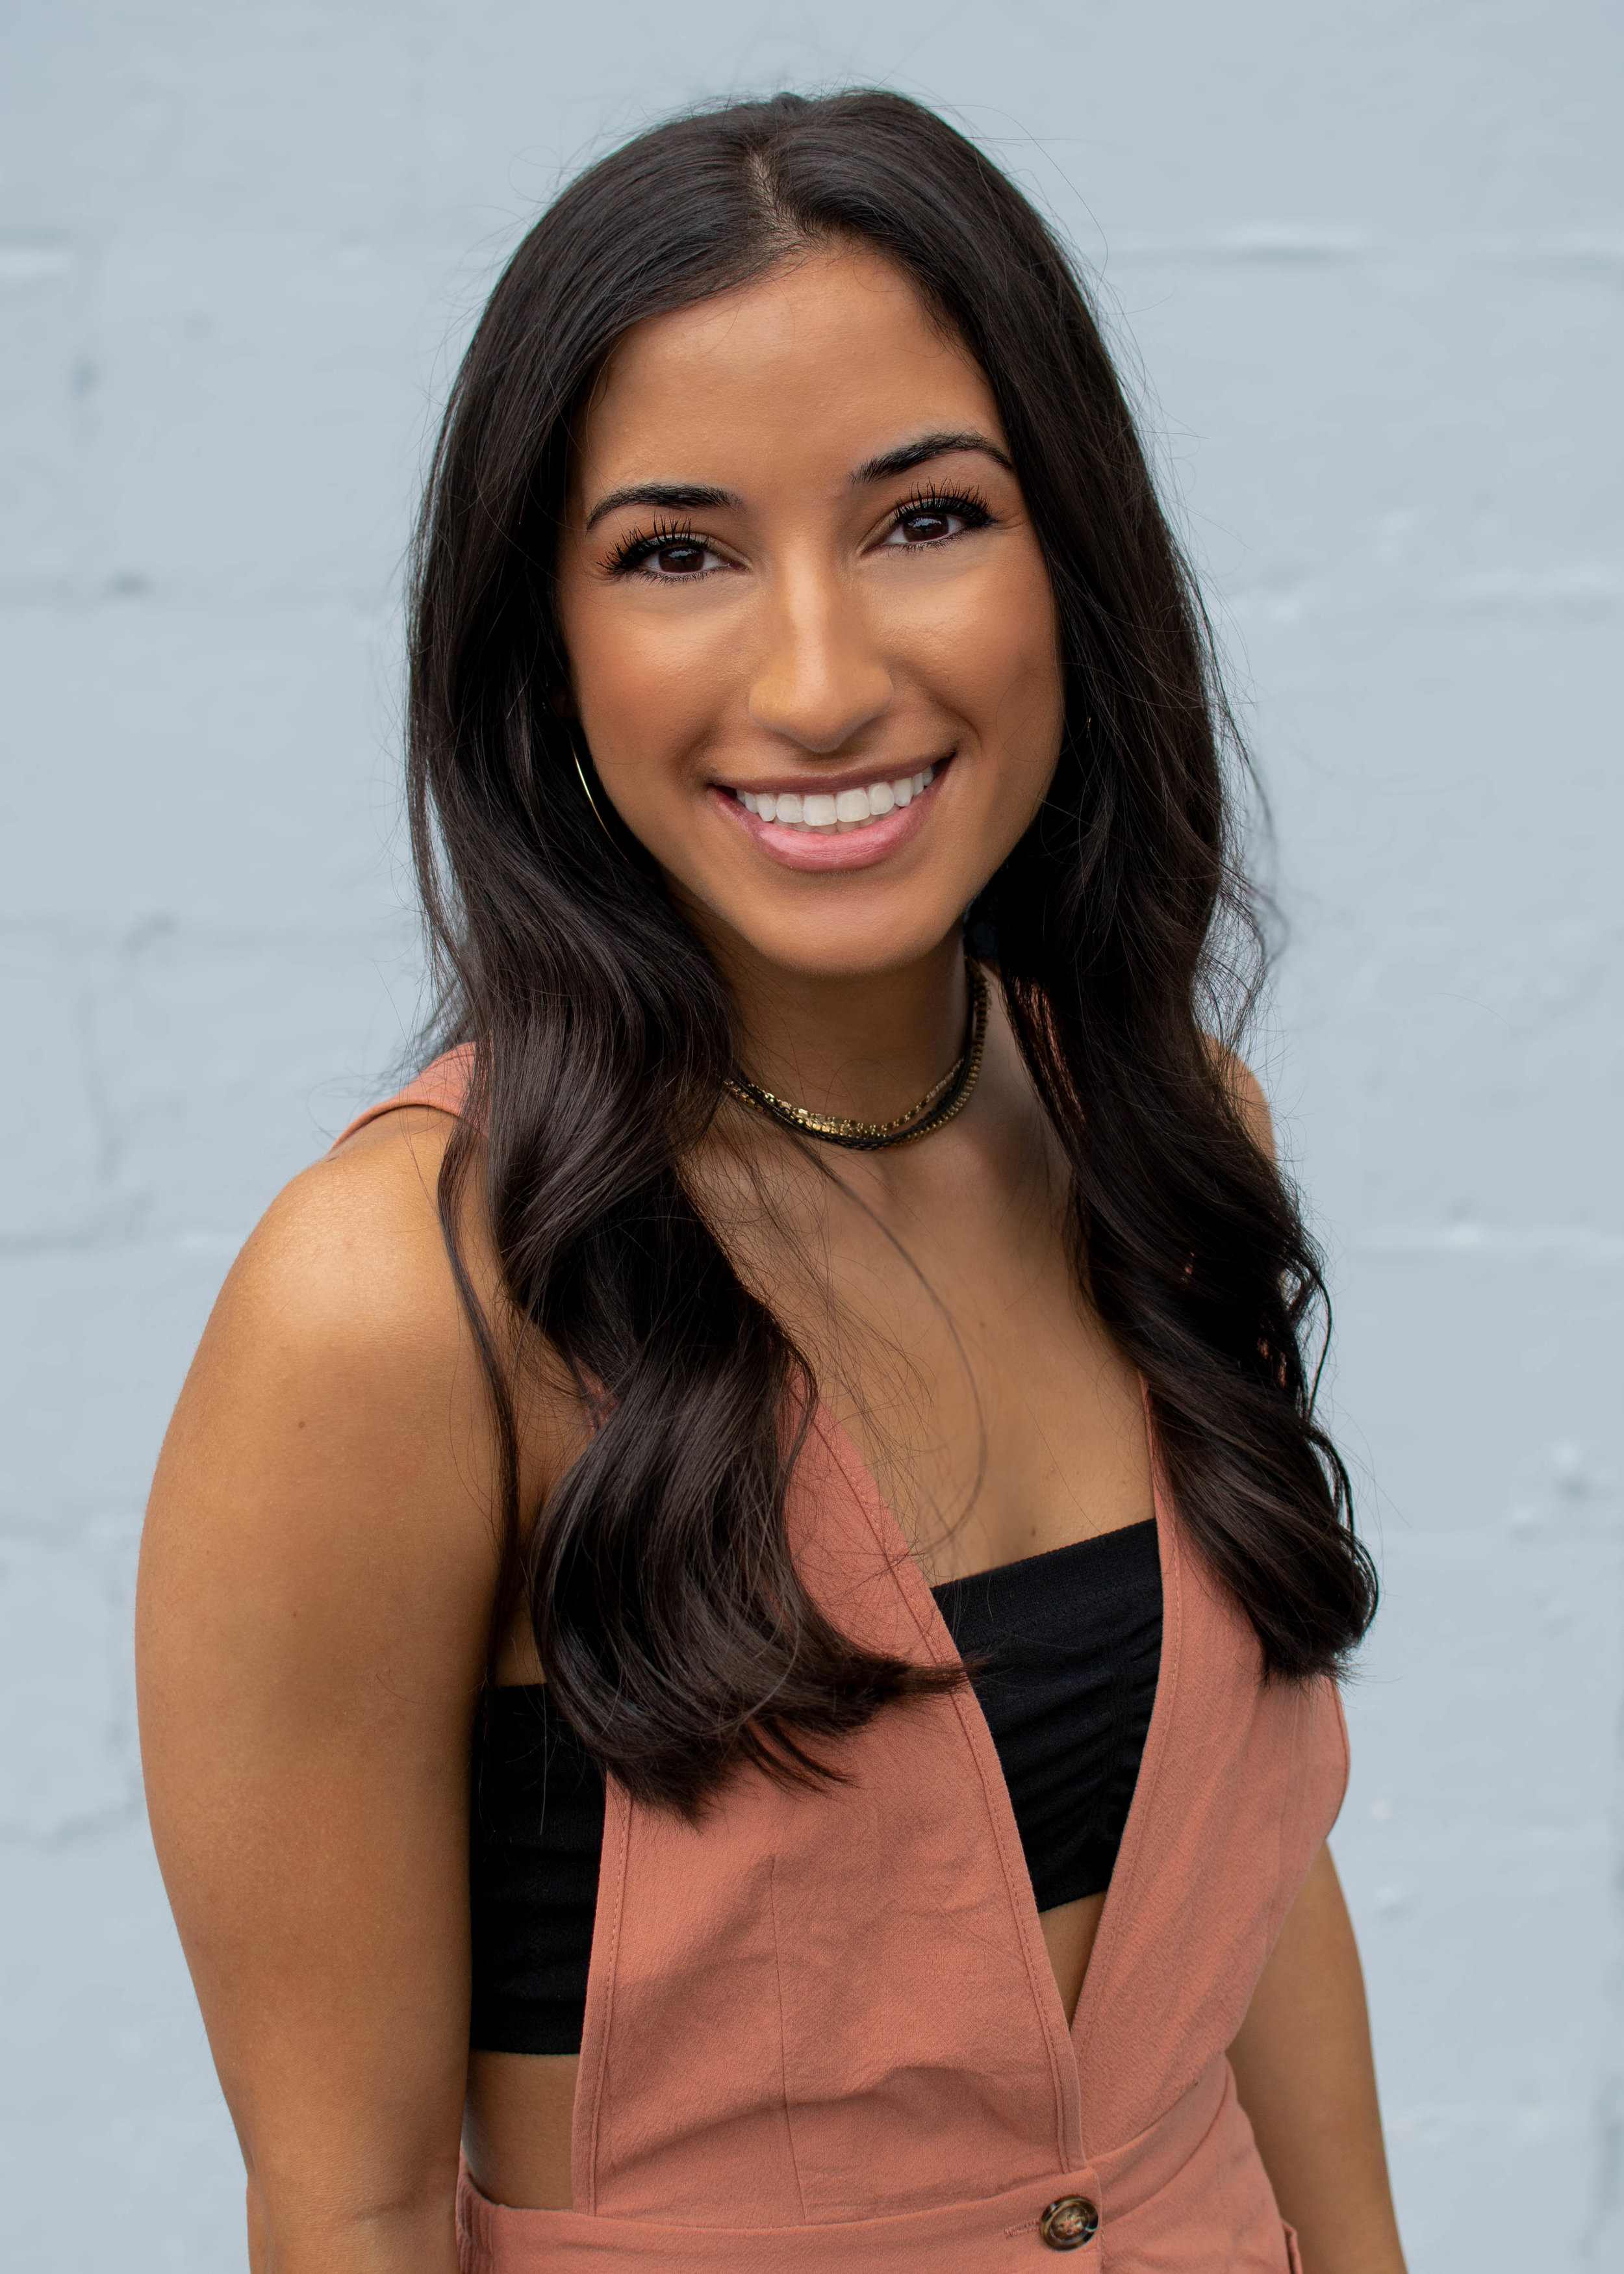 "Christina Massad - Christina Massad, an Atlanta native and citizen of Israel, began interning for Fly on a Wall in August of 2017 and became an official team member in 2018. Christina is a freelance dancer, choreographer, photographer, videographer and graphic designer. She graduated from Kennesaw State University in December of 2018 with a B.A in Dance and a B.S in Media Studies and Entertainment, Magna Cum Laude where she was the awarded the ""Outstanding Student/Senior"" in both of her majors. She received her dance training at The Georgia Ballet for 14 years and Powerhouse Dance Center for 2 years. She has had the honor of dancing in works by national and international choreographers including Ido Tadmor, Ella Ben-Aharon, Dr. Ivan Pulinkala, James Graham, Sean Nguyen-Hilton, Christine Welker, Nicole Johnson, Otis Sallid, Fly on a Wall and more. Christina has presented her work, ""is rael i"" at the Modern Atlanta Dance Festival in May 2019 and at the 2018 KSU Dance Company Spring Concert. For more, visit www.christinajmassad.com"